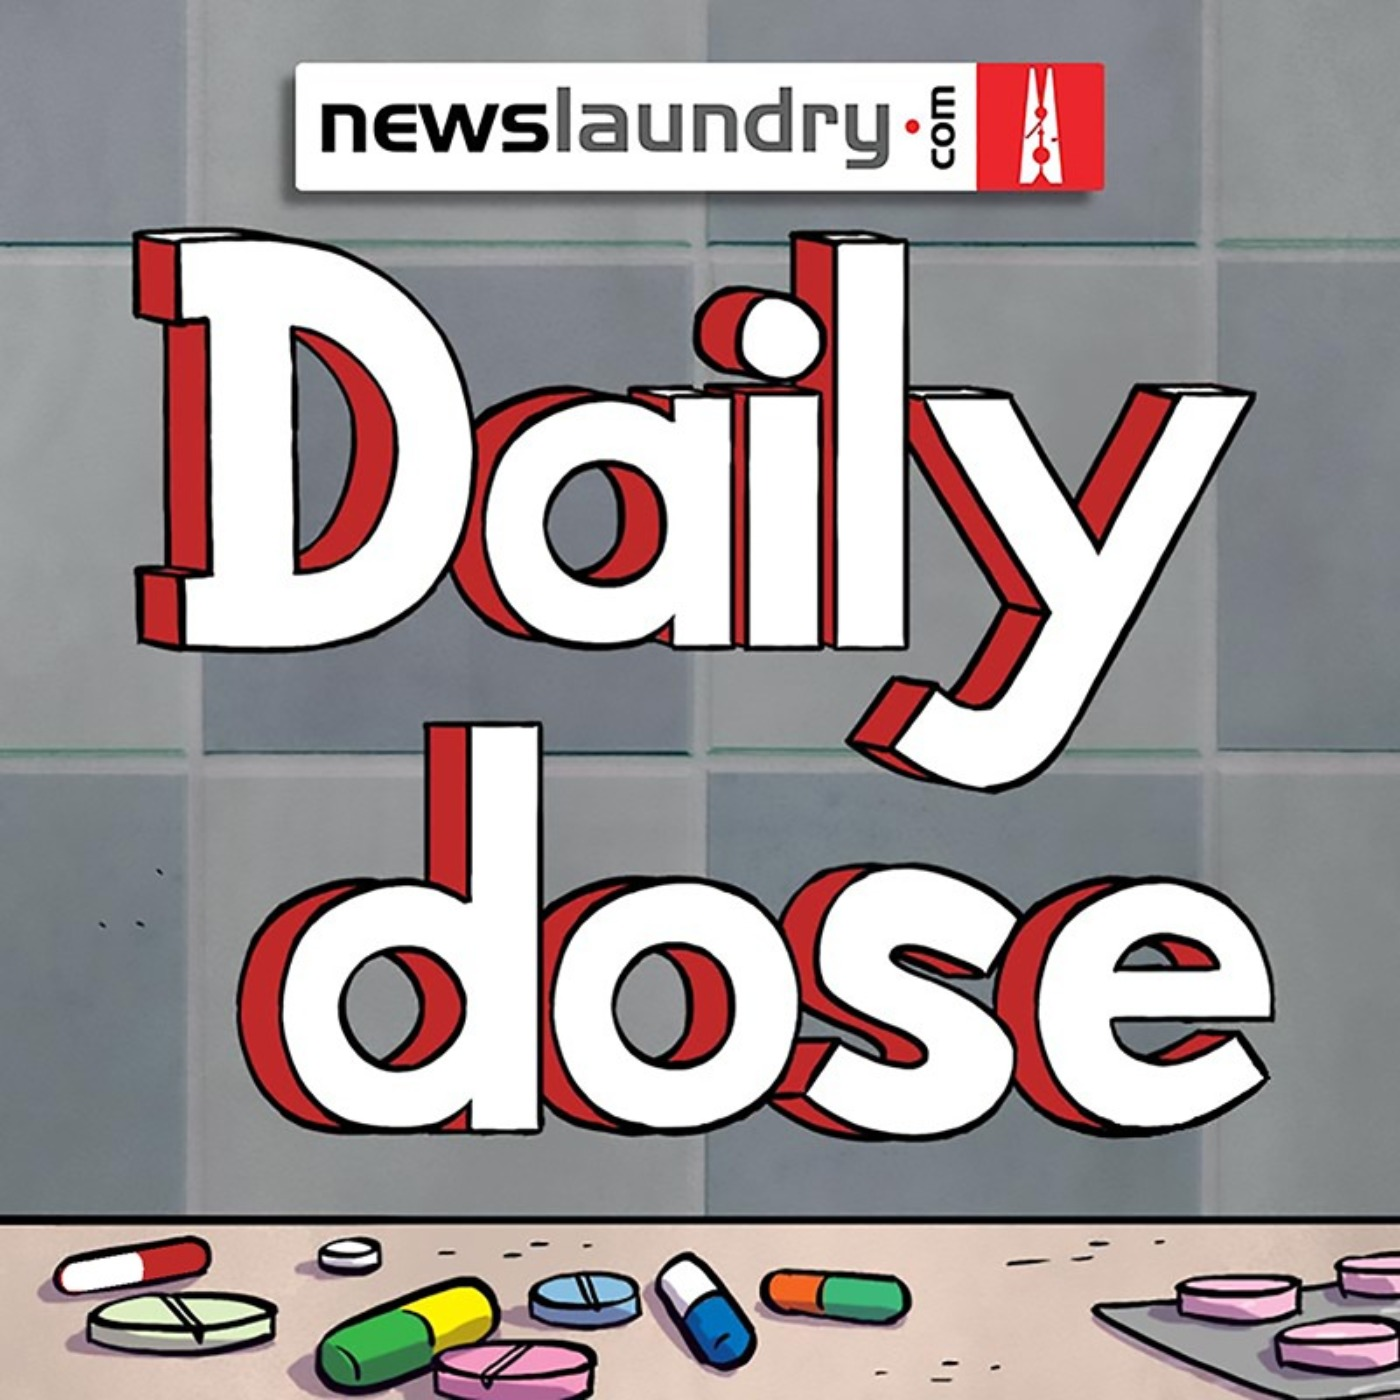 Daily Dose Ep 447: Ram Mandir, Covid-19, Beirut explosion, and more